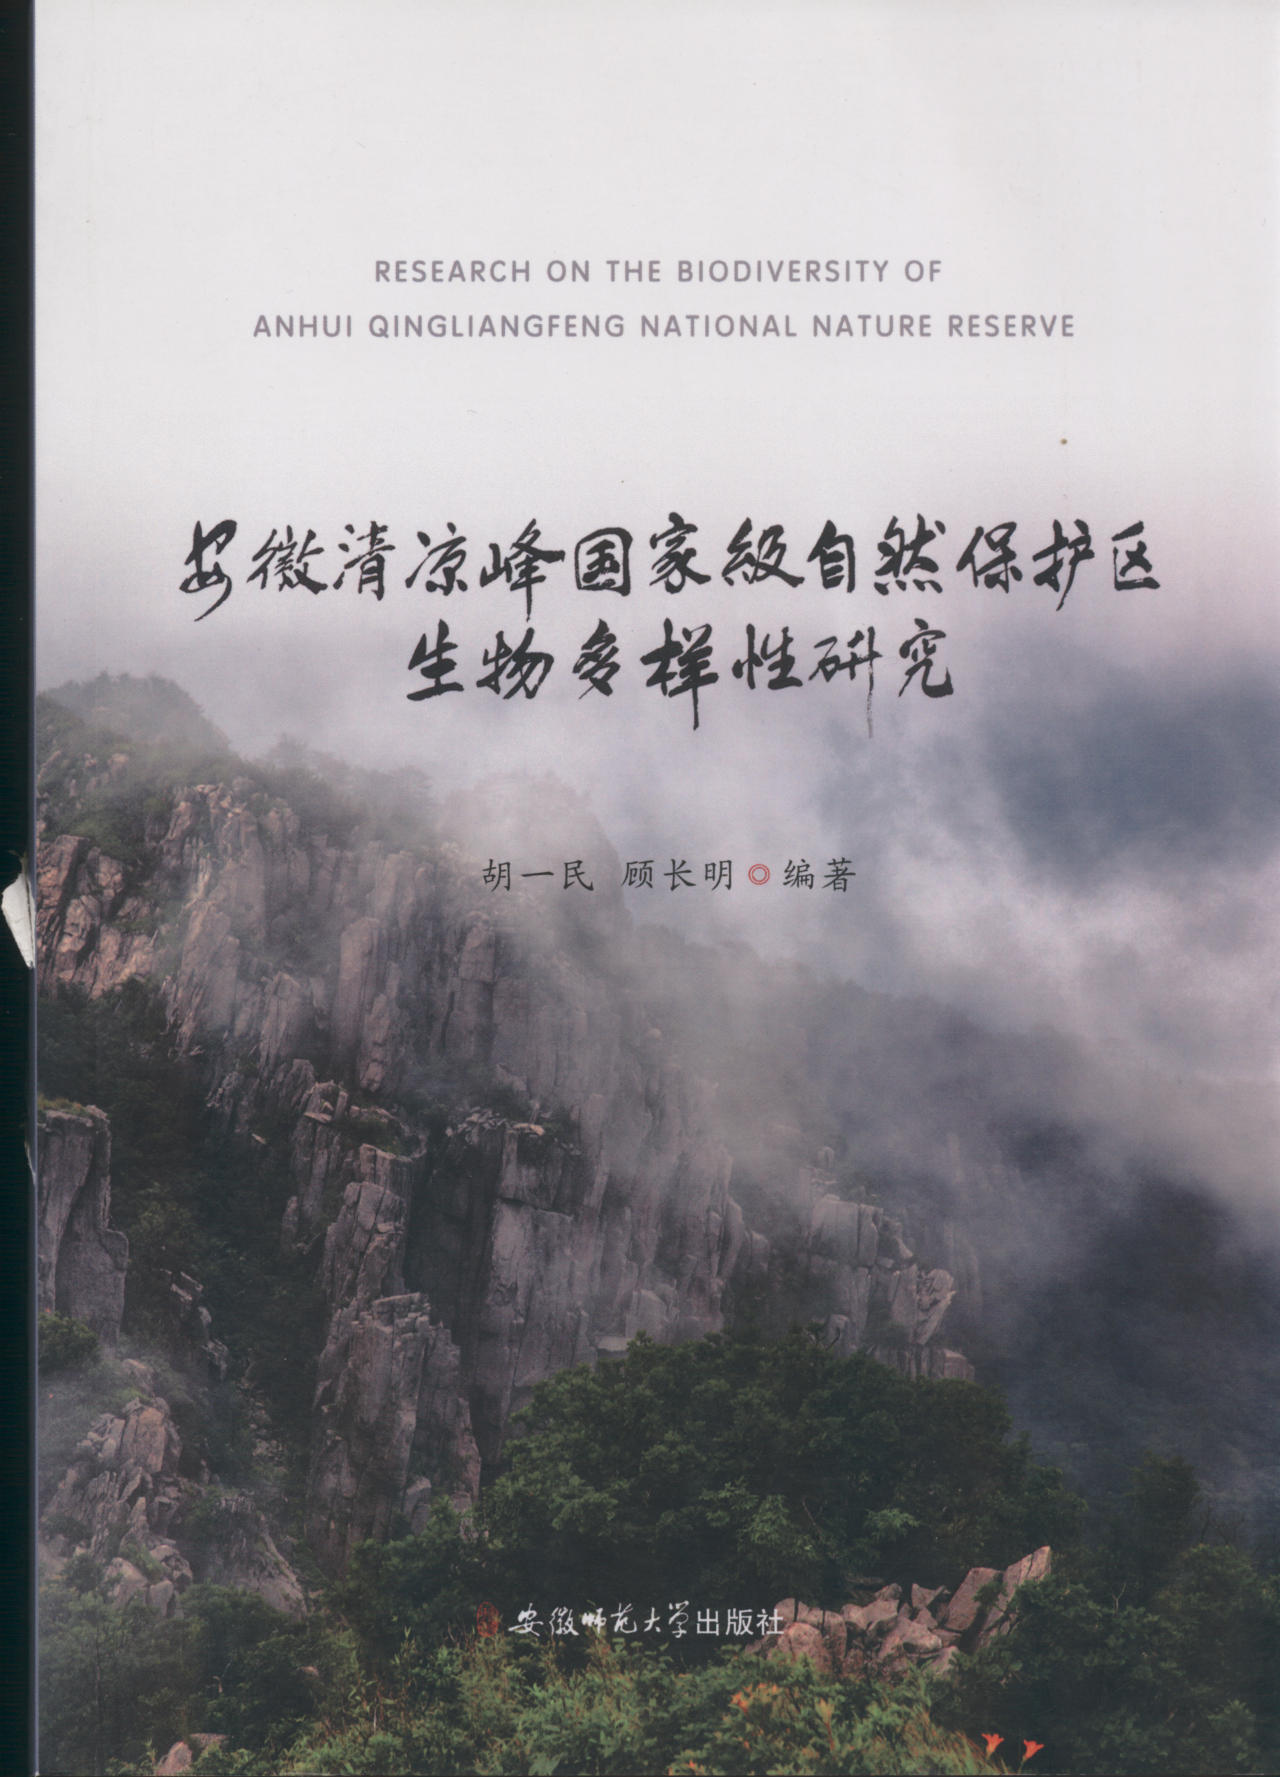 RESEARCH ON THE BIODIVERSITY OF ANHUI QINGLIANGFENG NATIONAL NATURE RESERVE 安徽清凉峰国家级自然保护区生物多样性研究